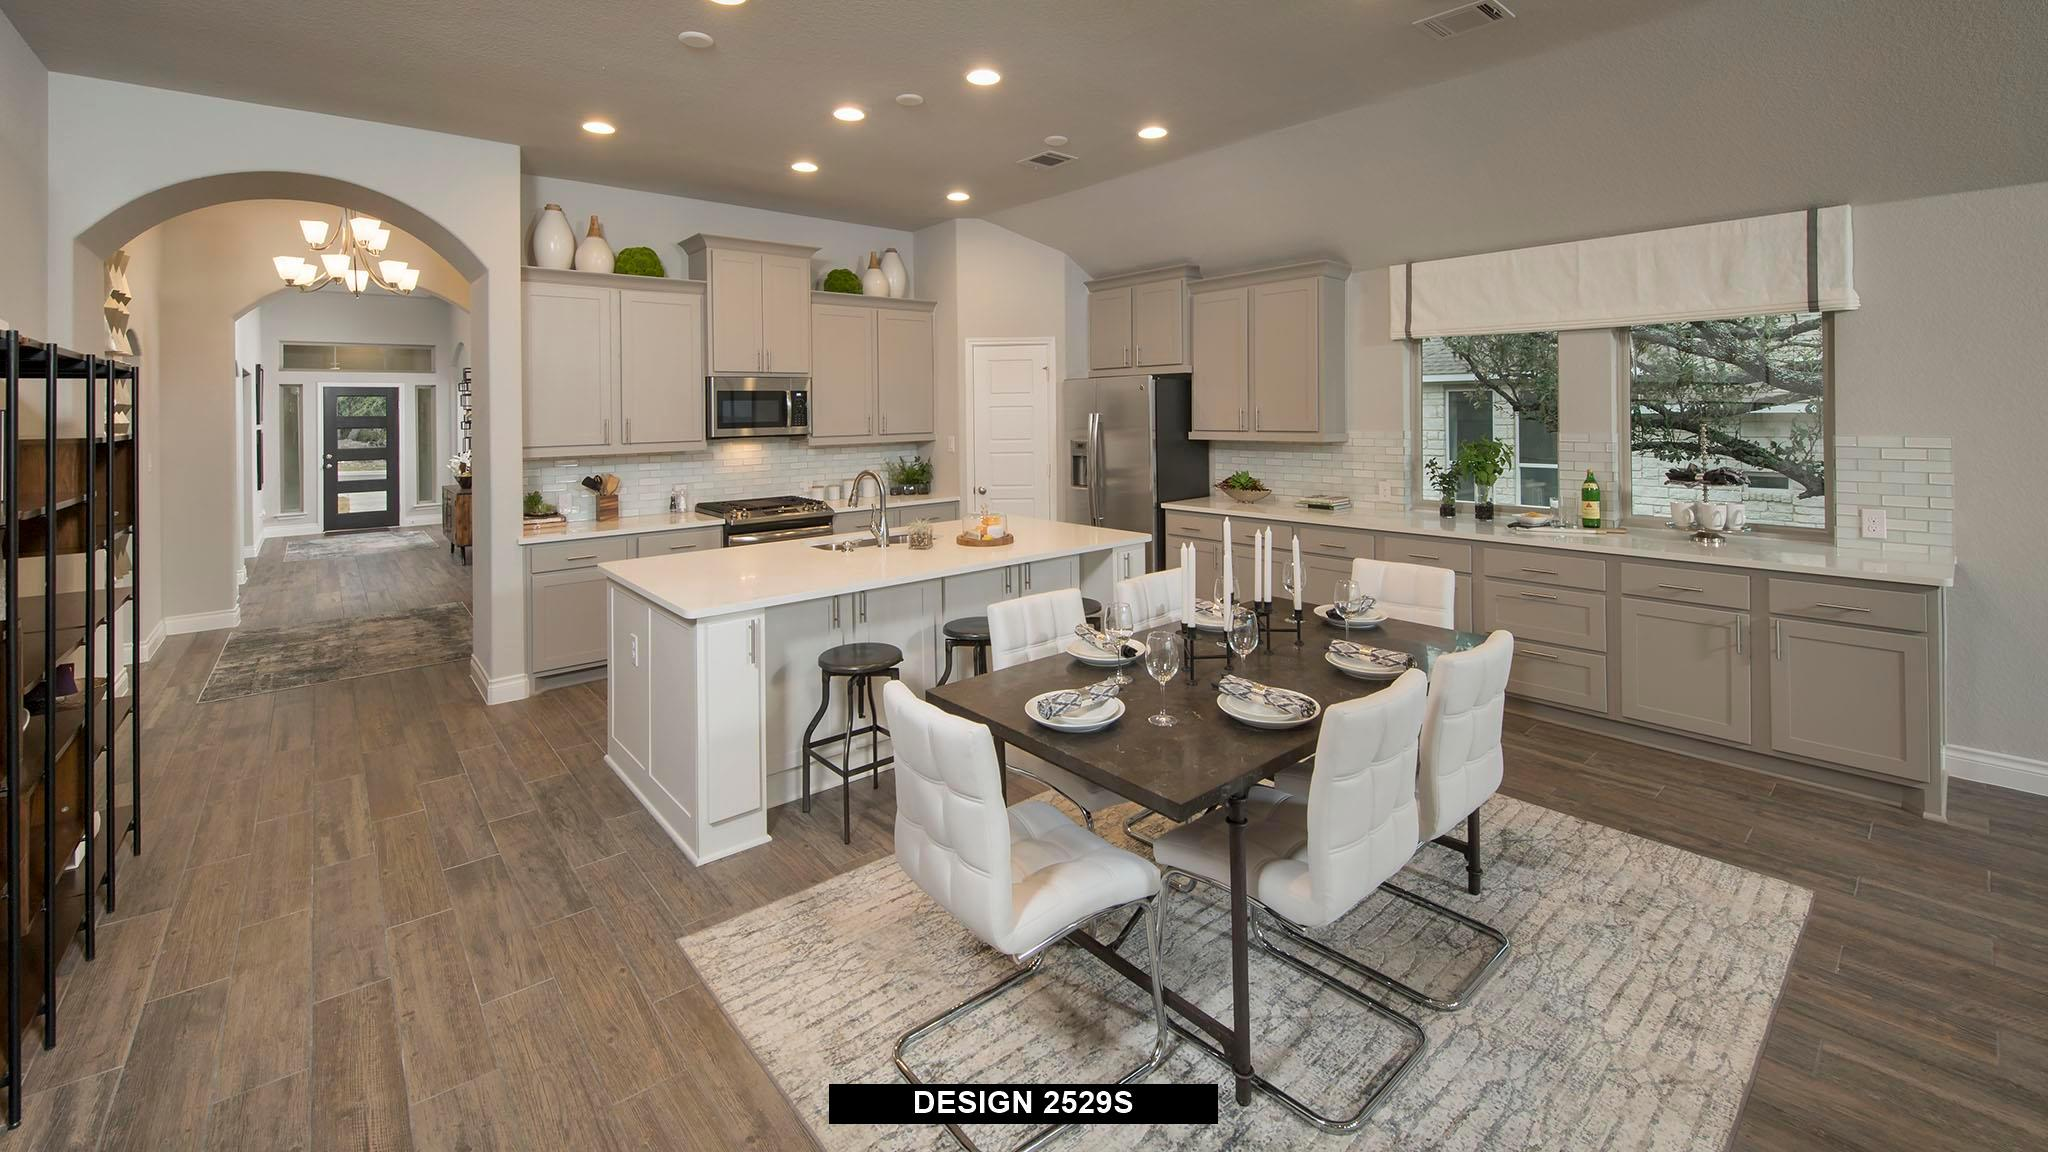 Kitchen featured in the 2529S By Perry Homes in Austin, TX